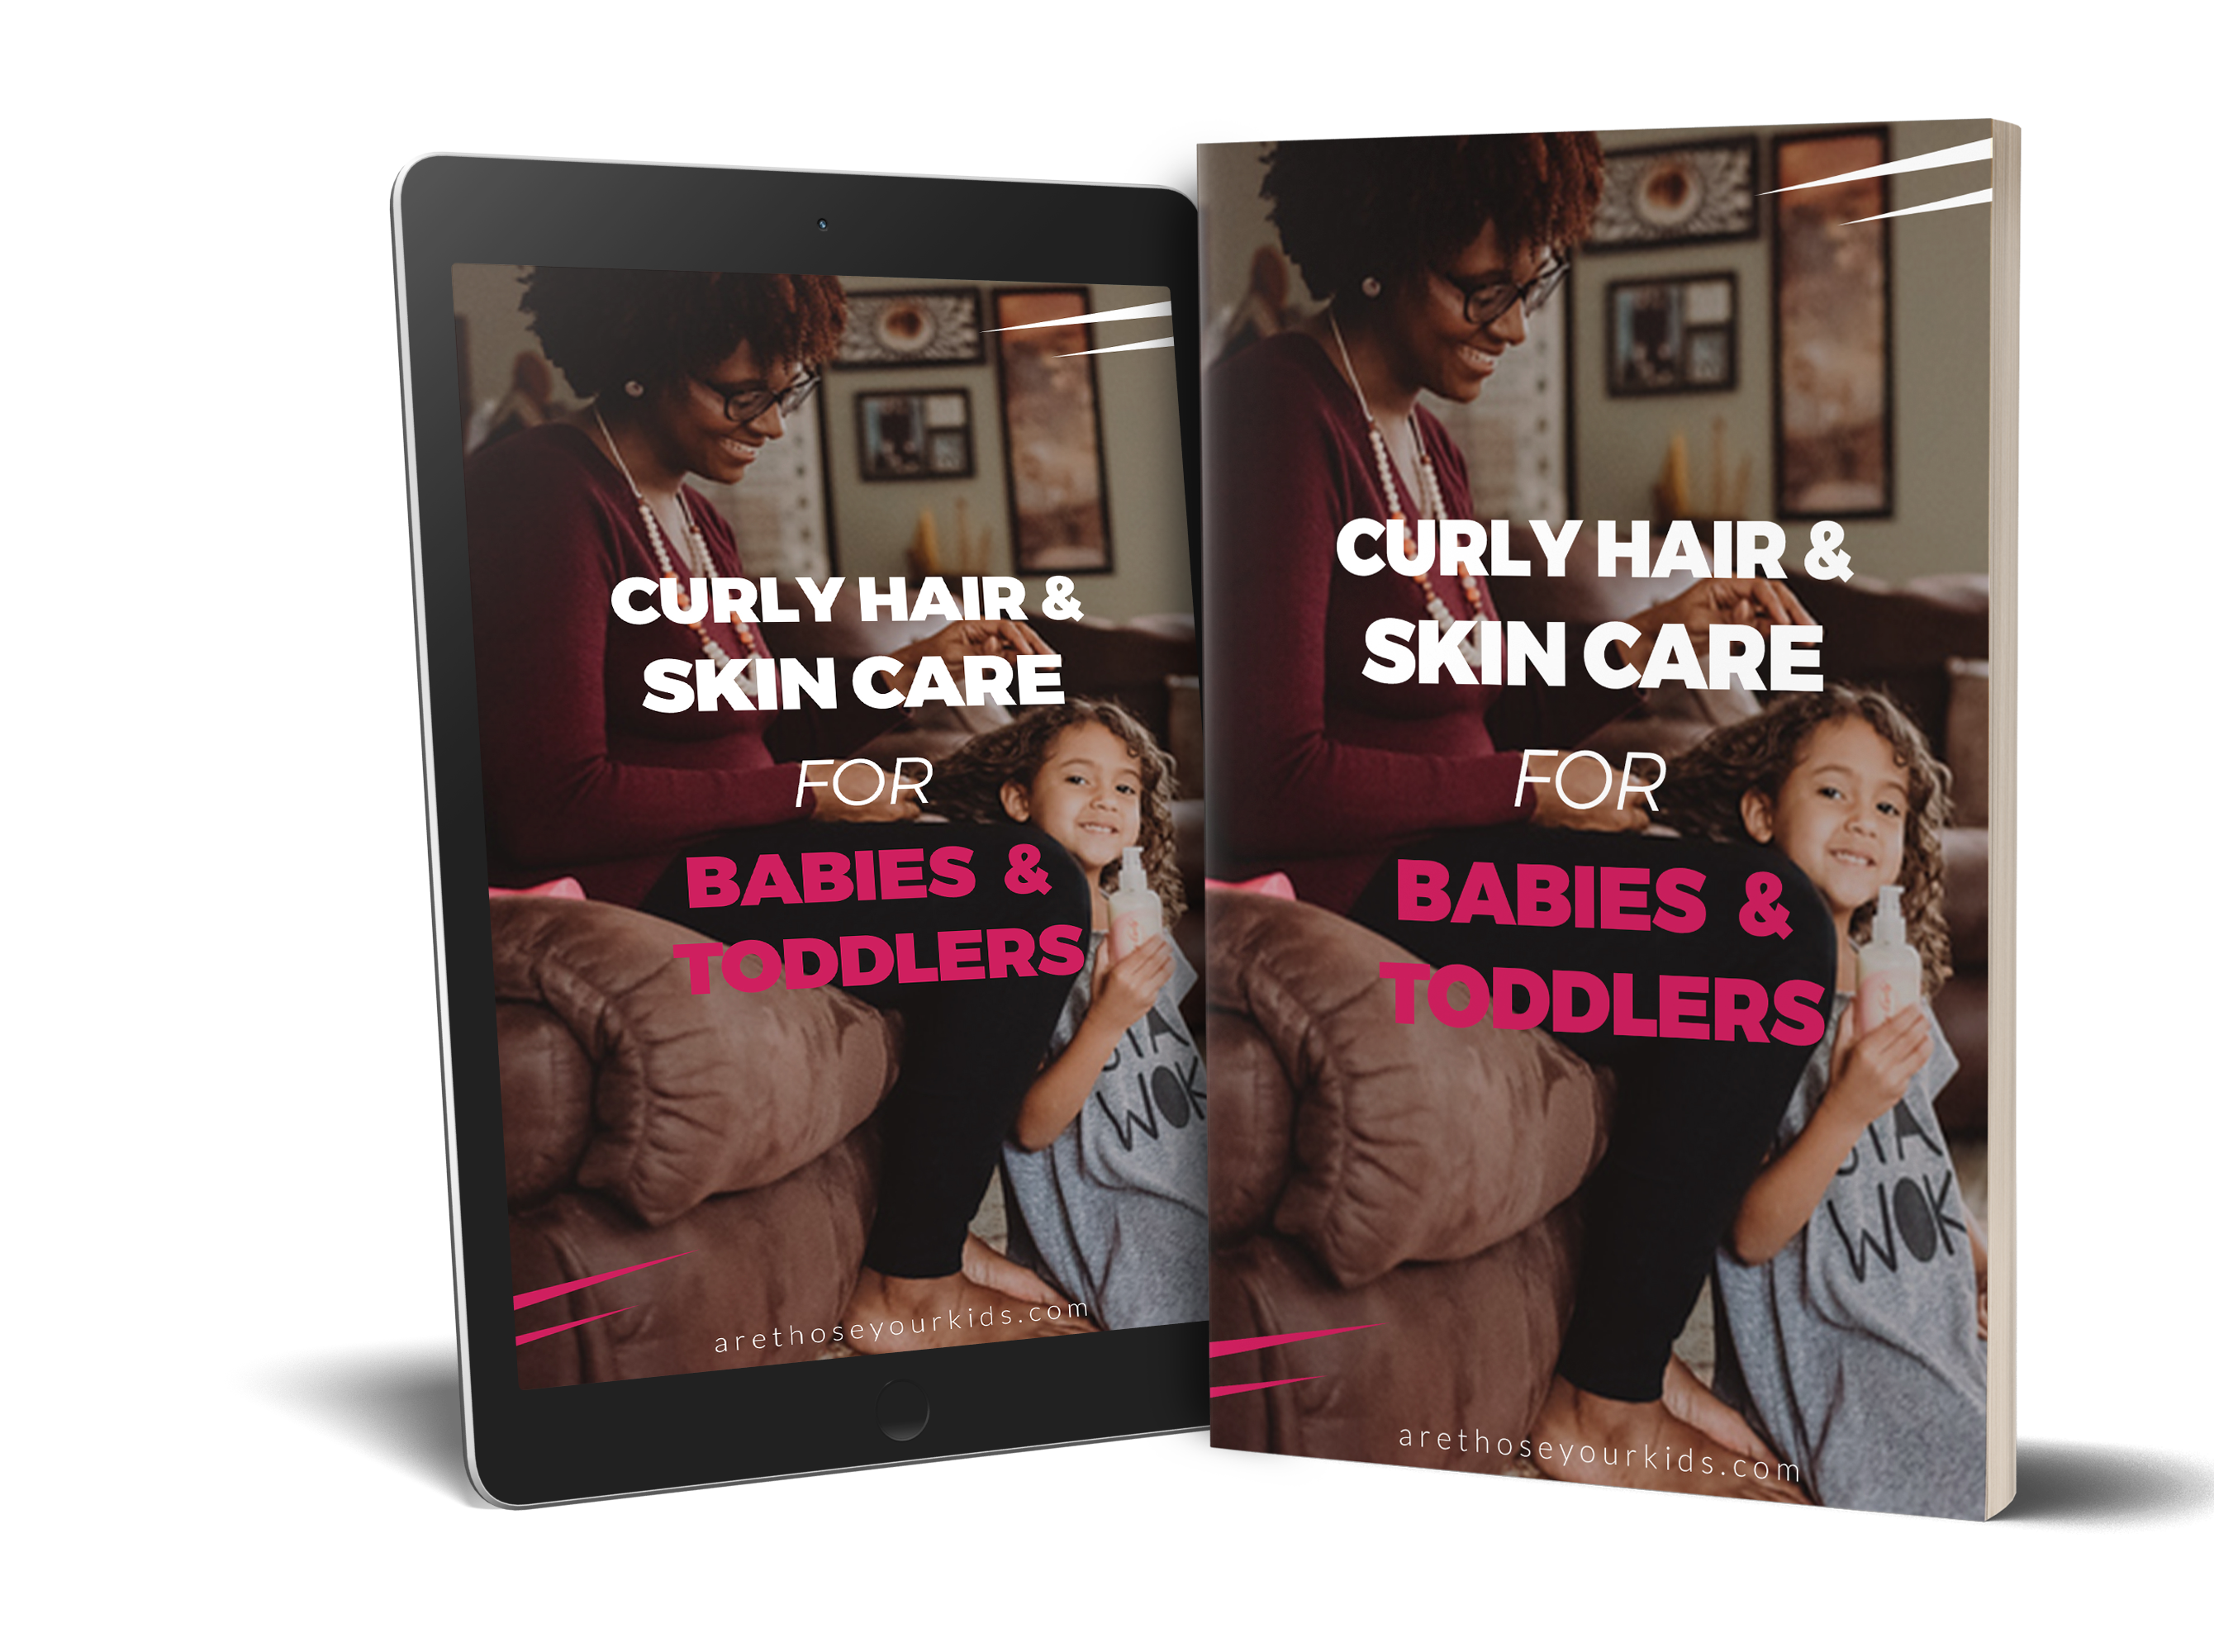 Curly Hair & Skin Care for Babies and Toddlers